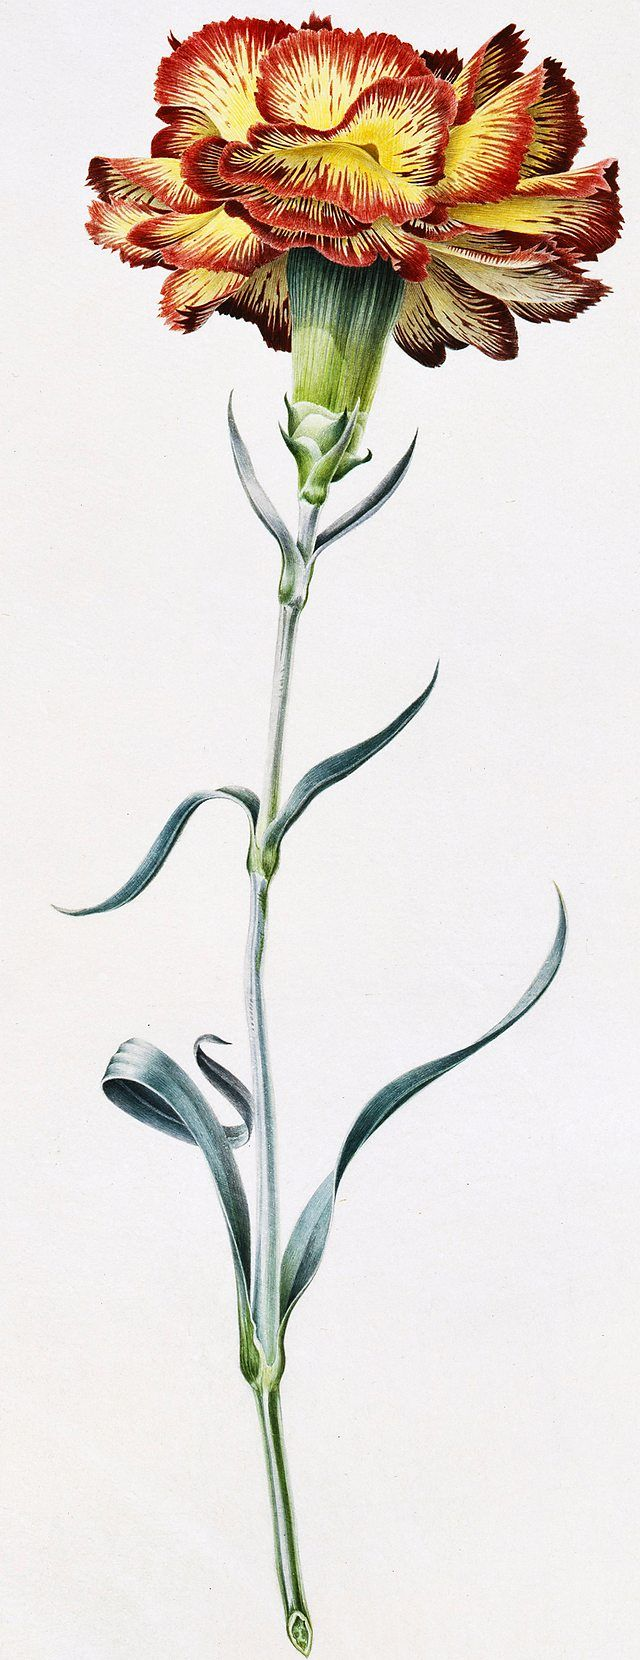 Rory McEwen, Allwood's Carnation I, 1962 | Watercolour on vellum BBC - BBC Arts - In Search of Rory McEwen